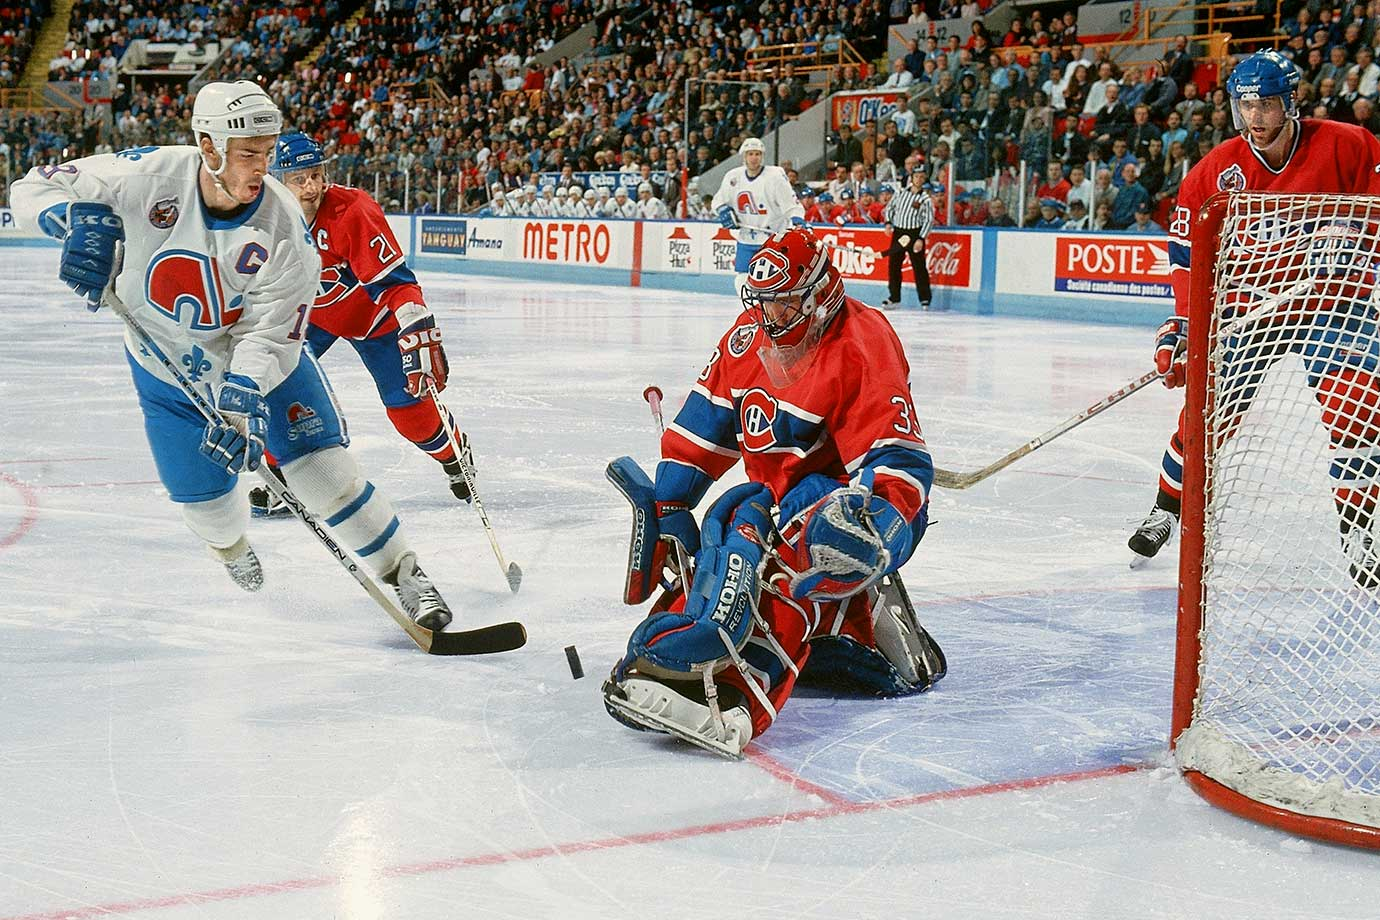 April 20, 1993 — Adams Division Semifinals, Game 2 (Canadiens vs. Nordiques)